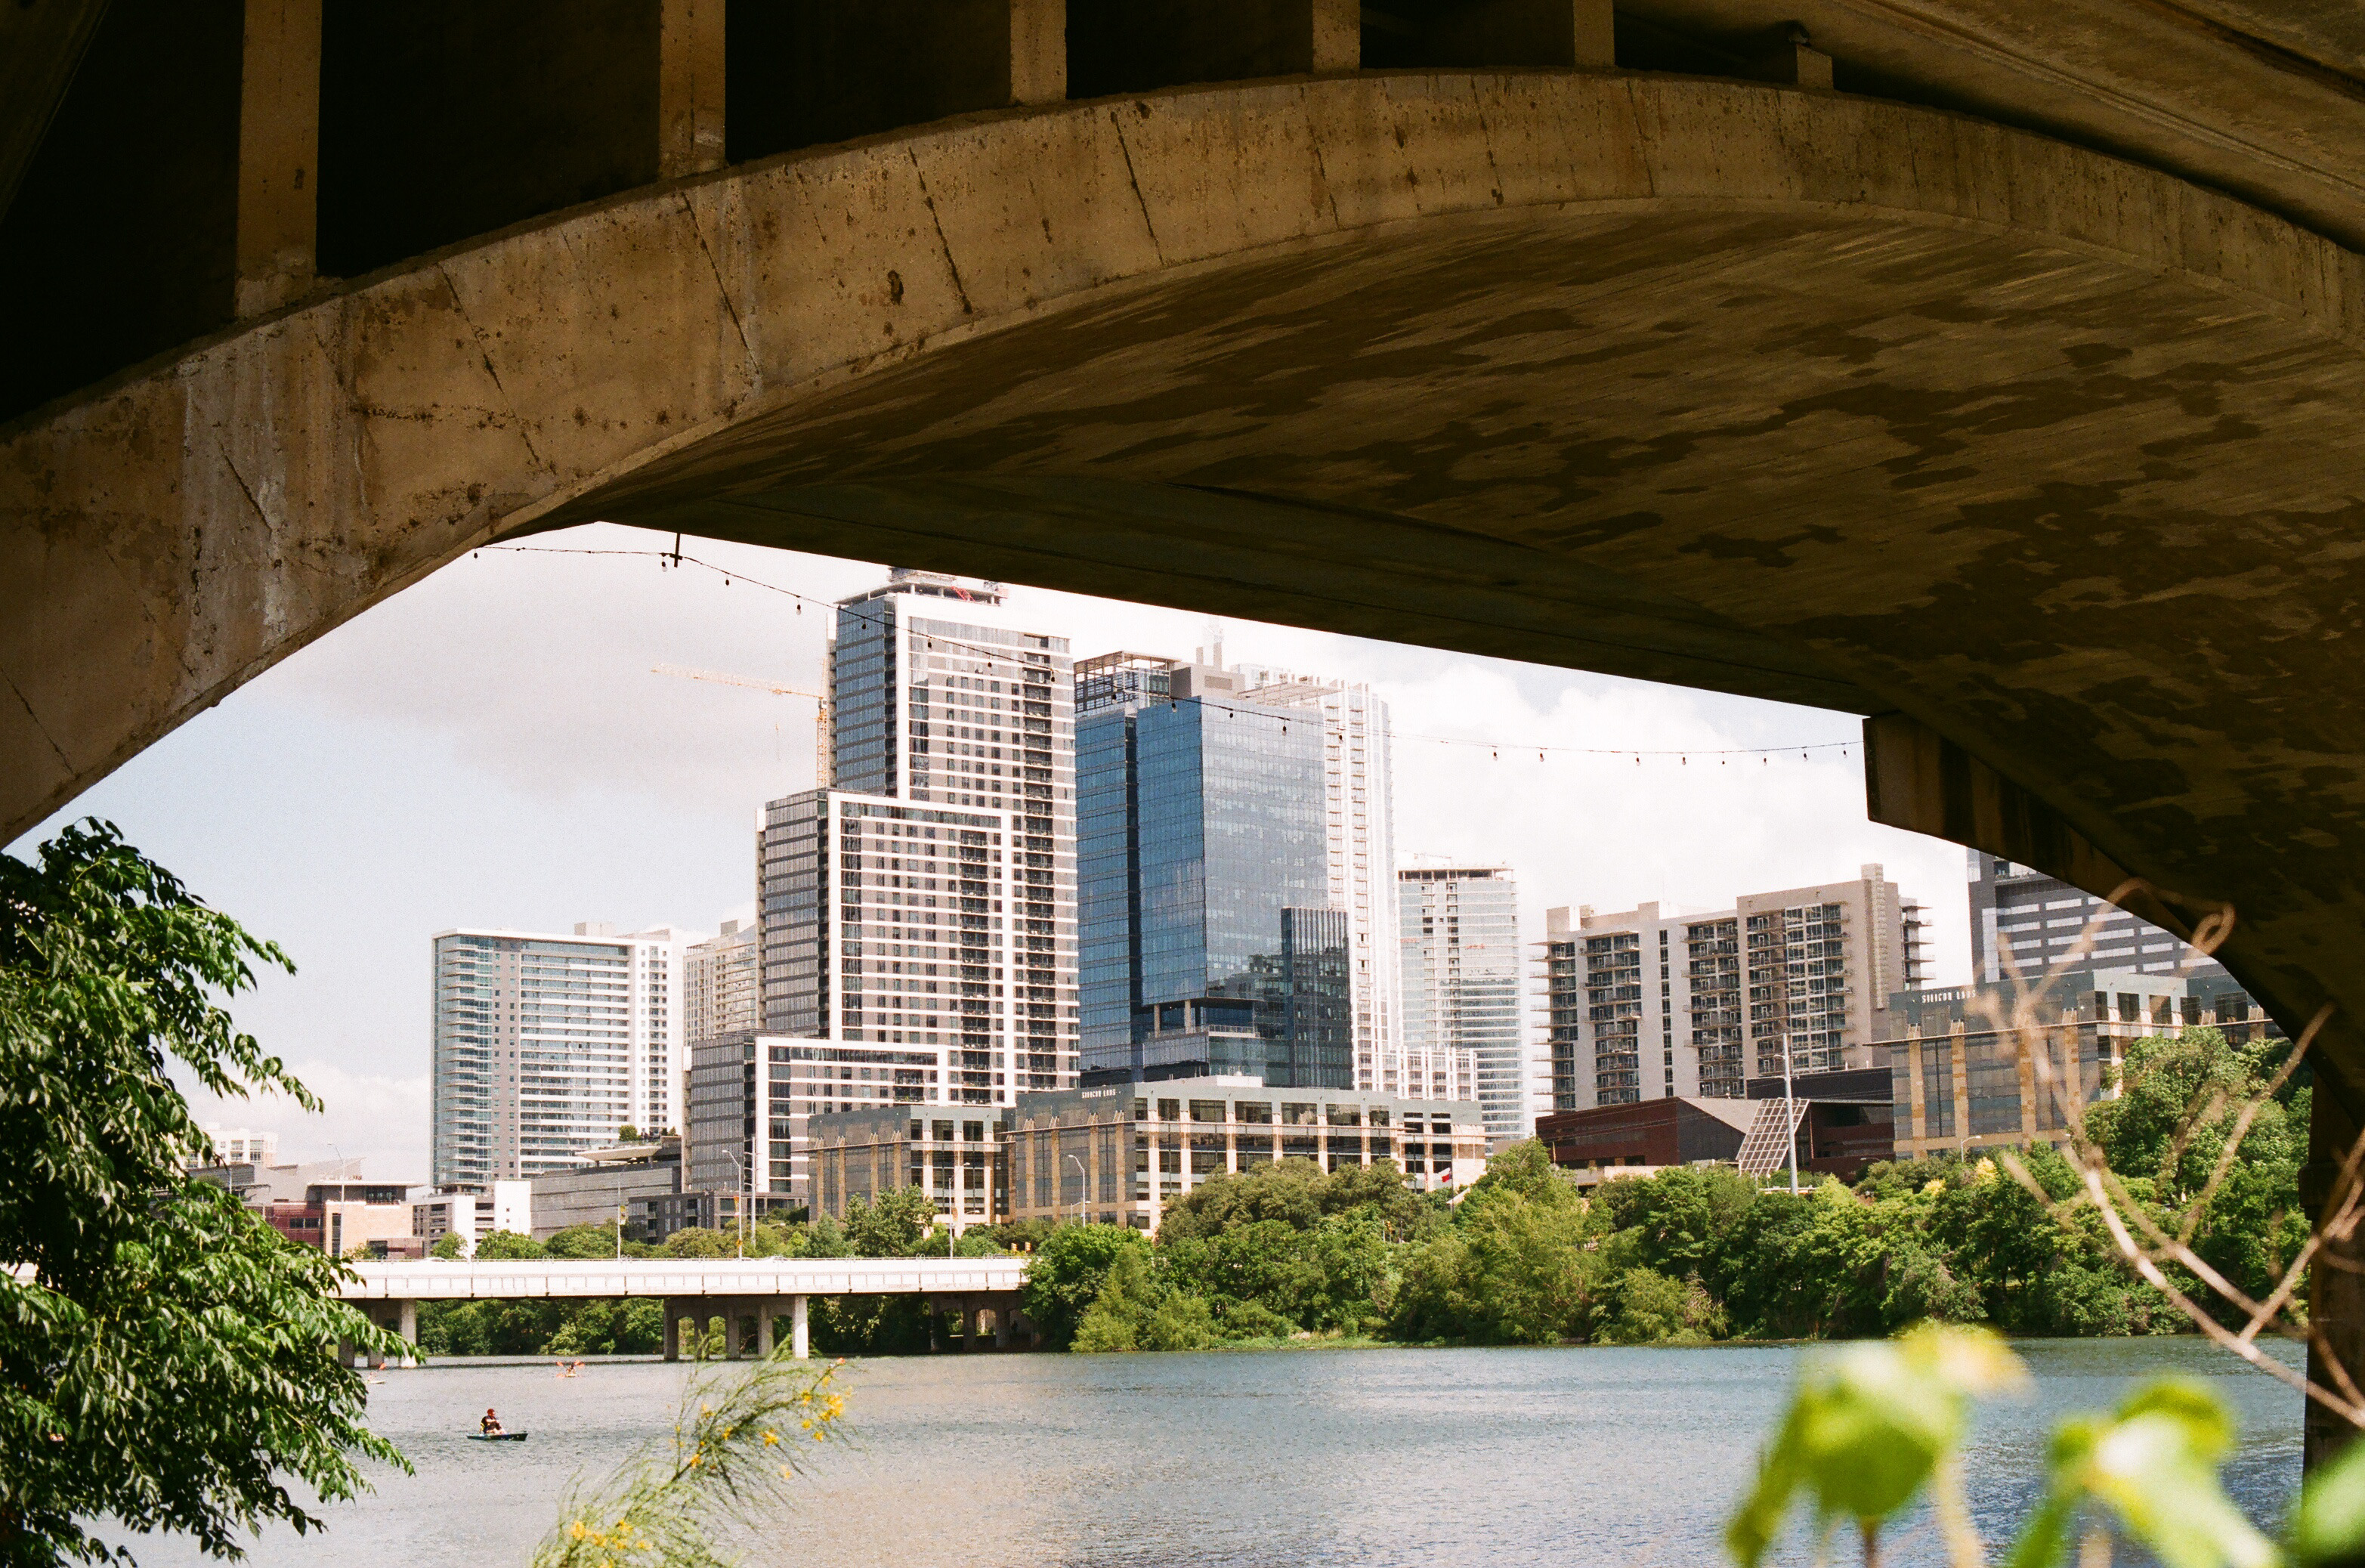 Austin downtown from under the South Congress Street bridge